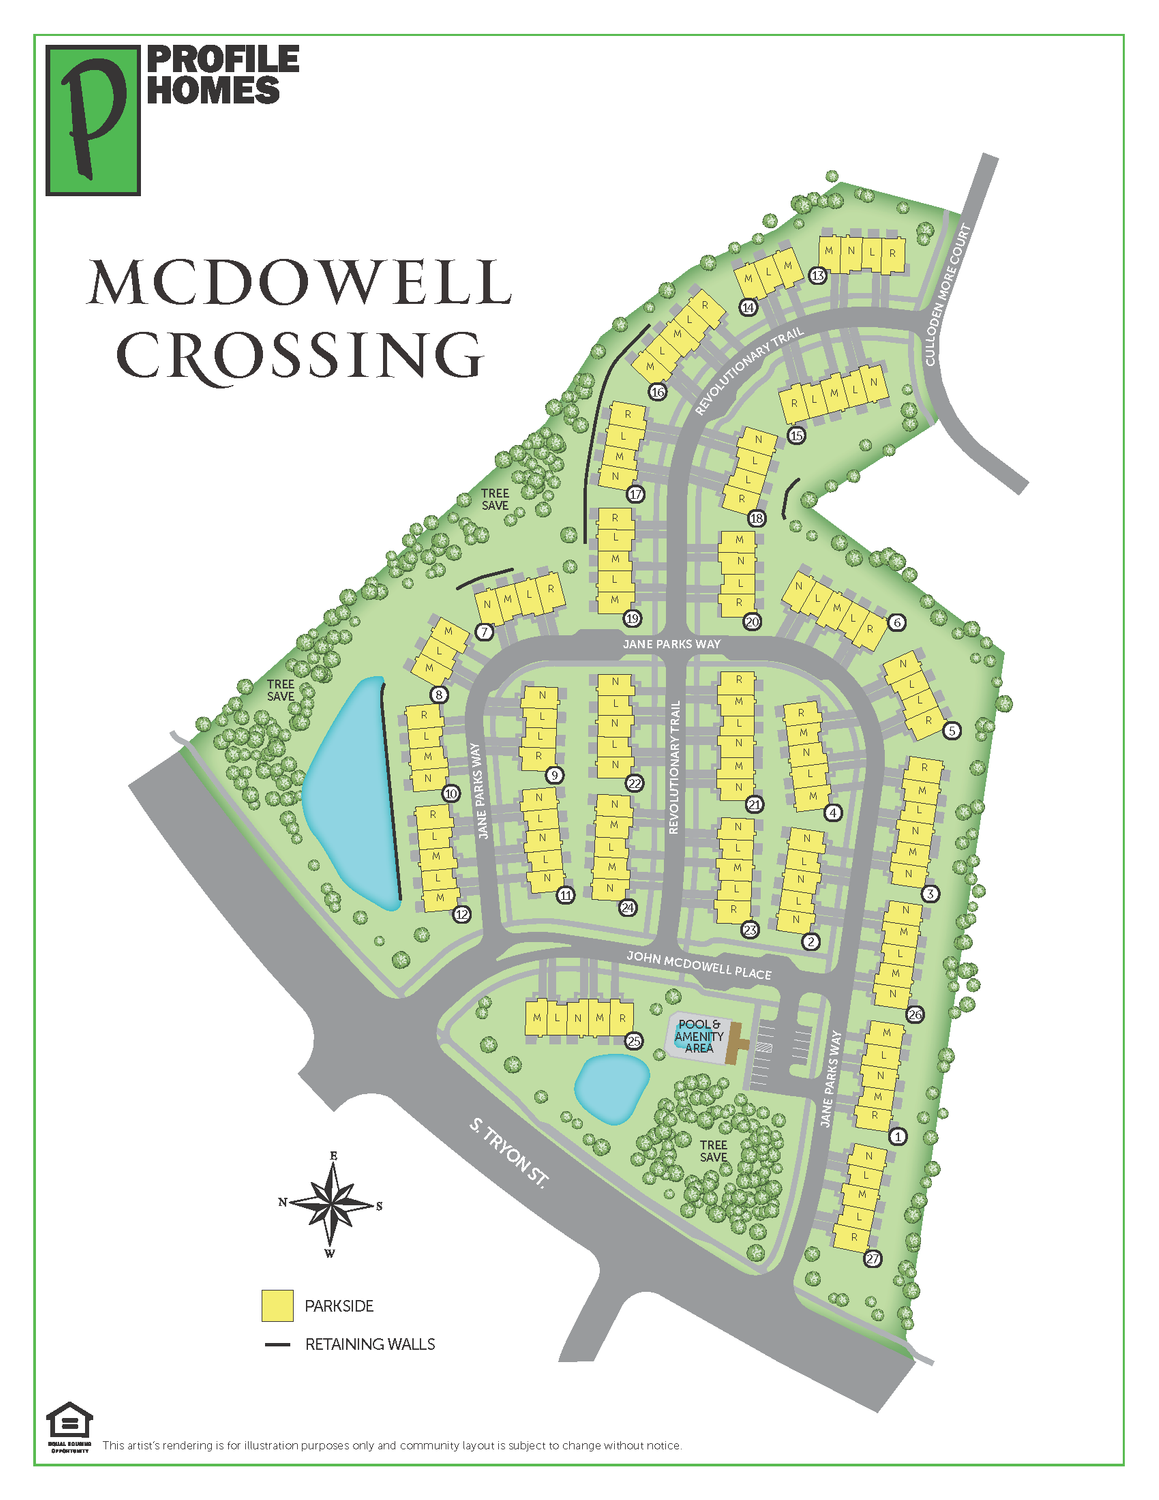 McDowell Crossing